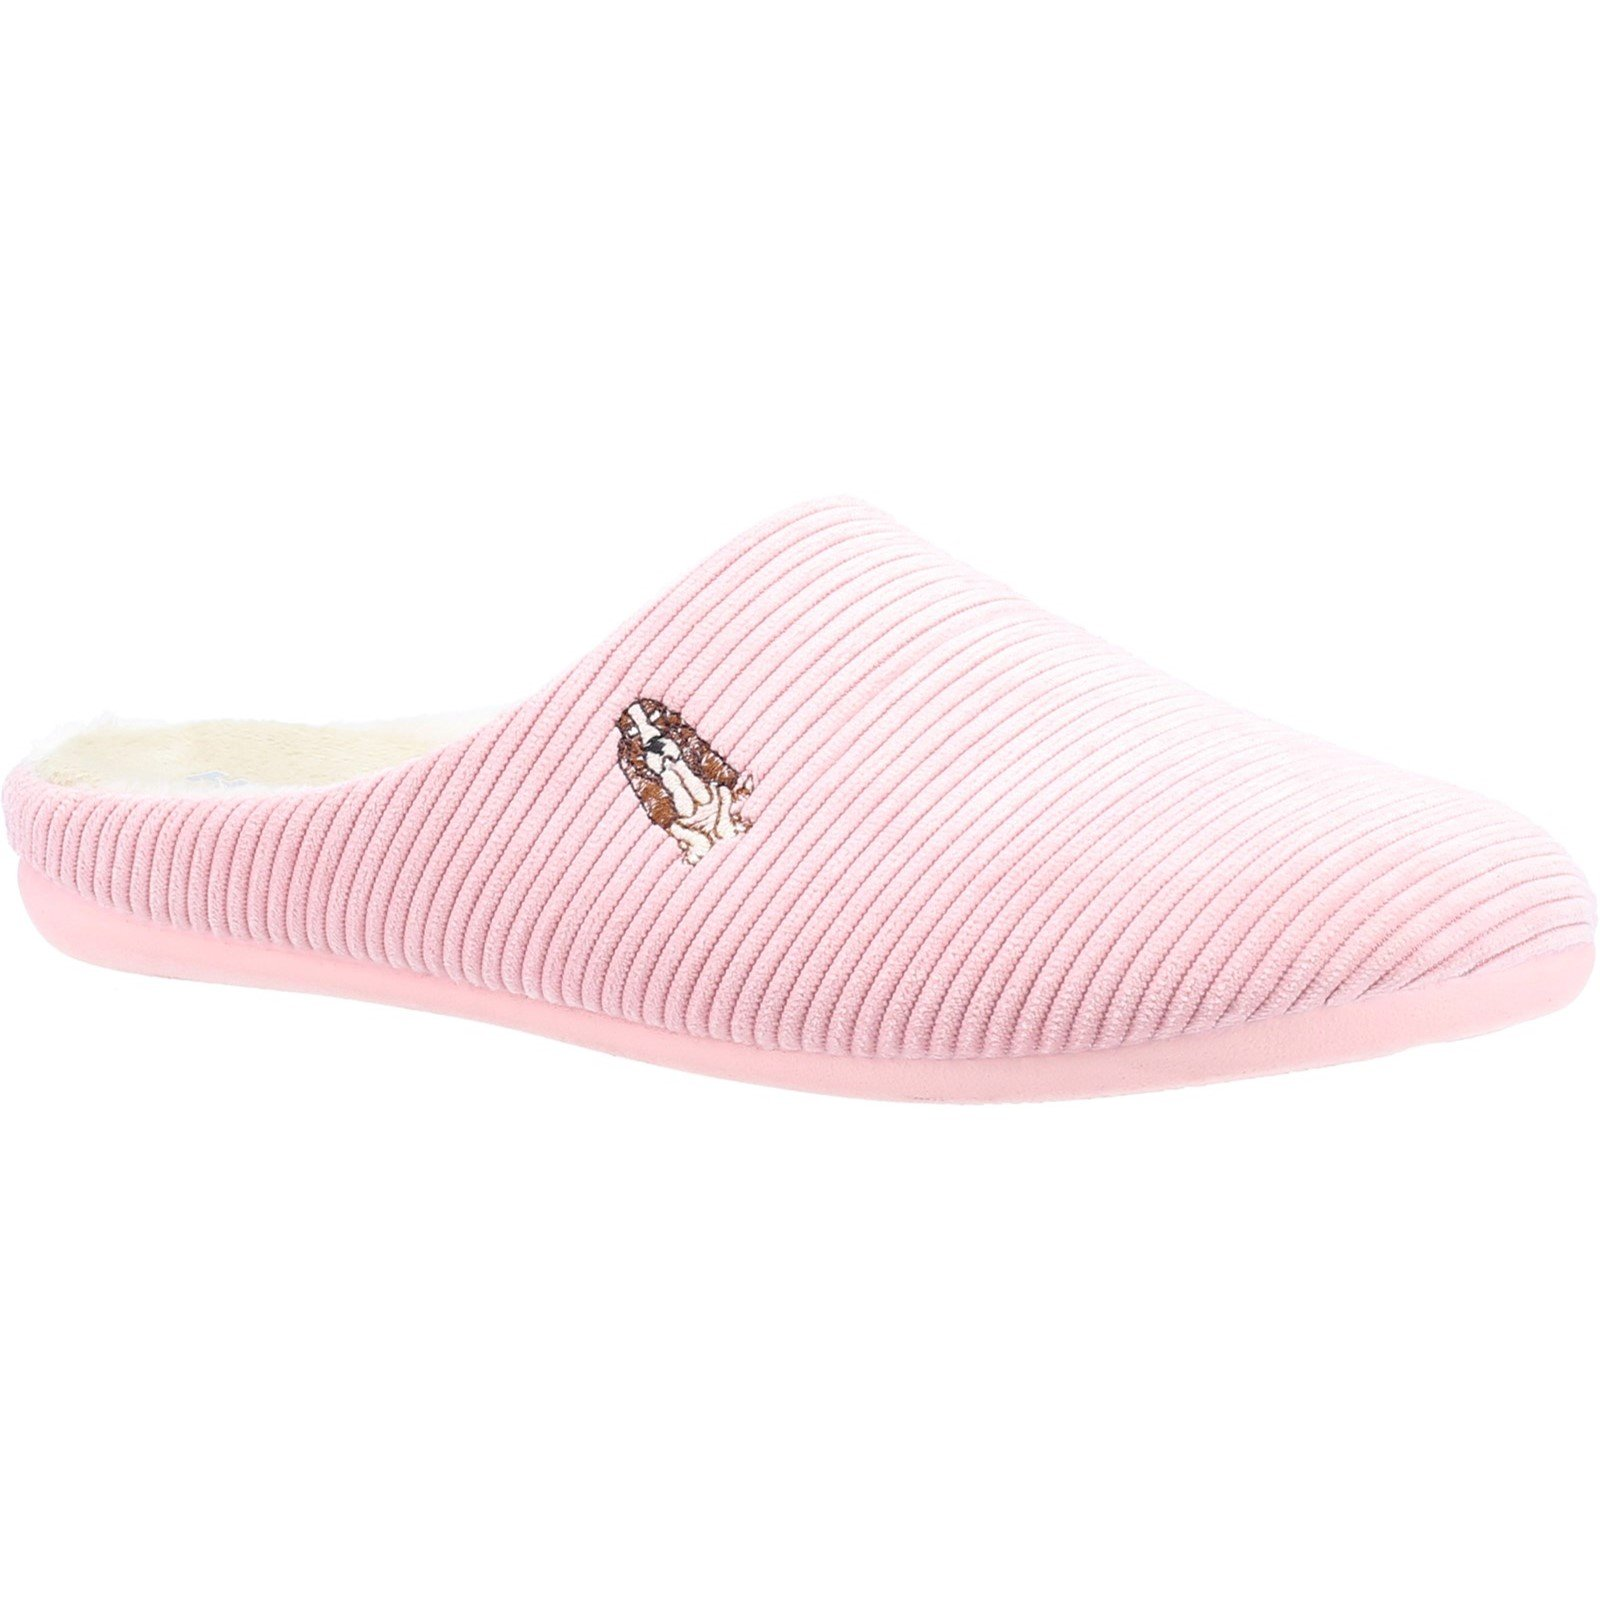 Hush Puppies Women's Raelyn Slipper Various Colours 32854 - Pink 7